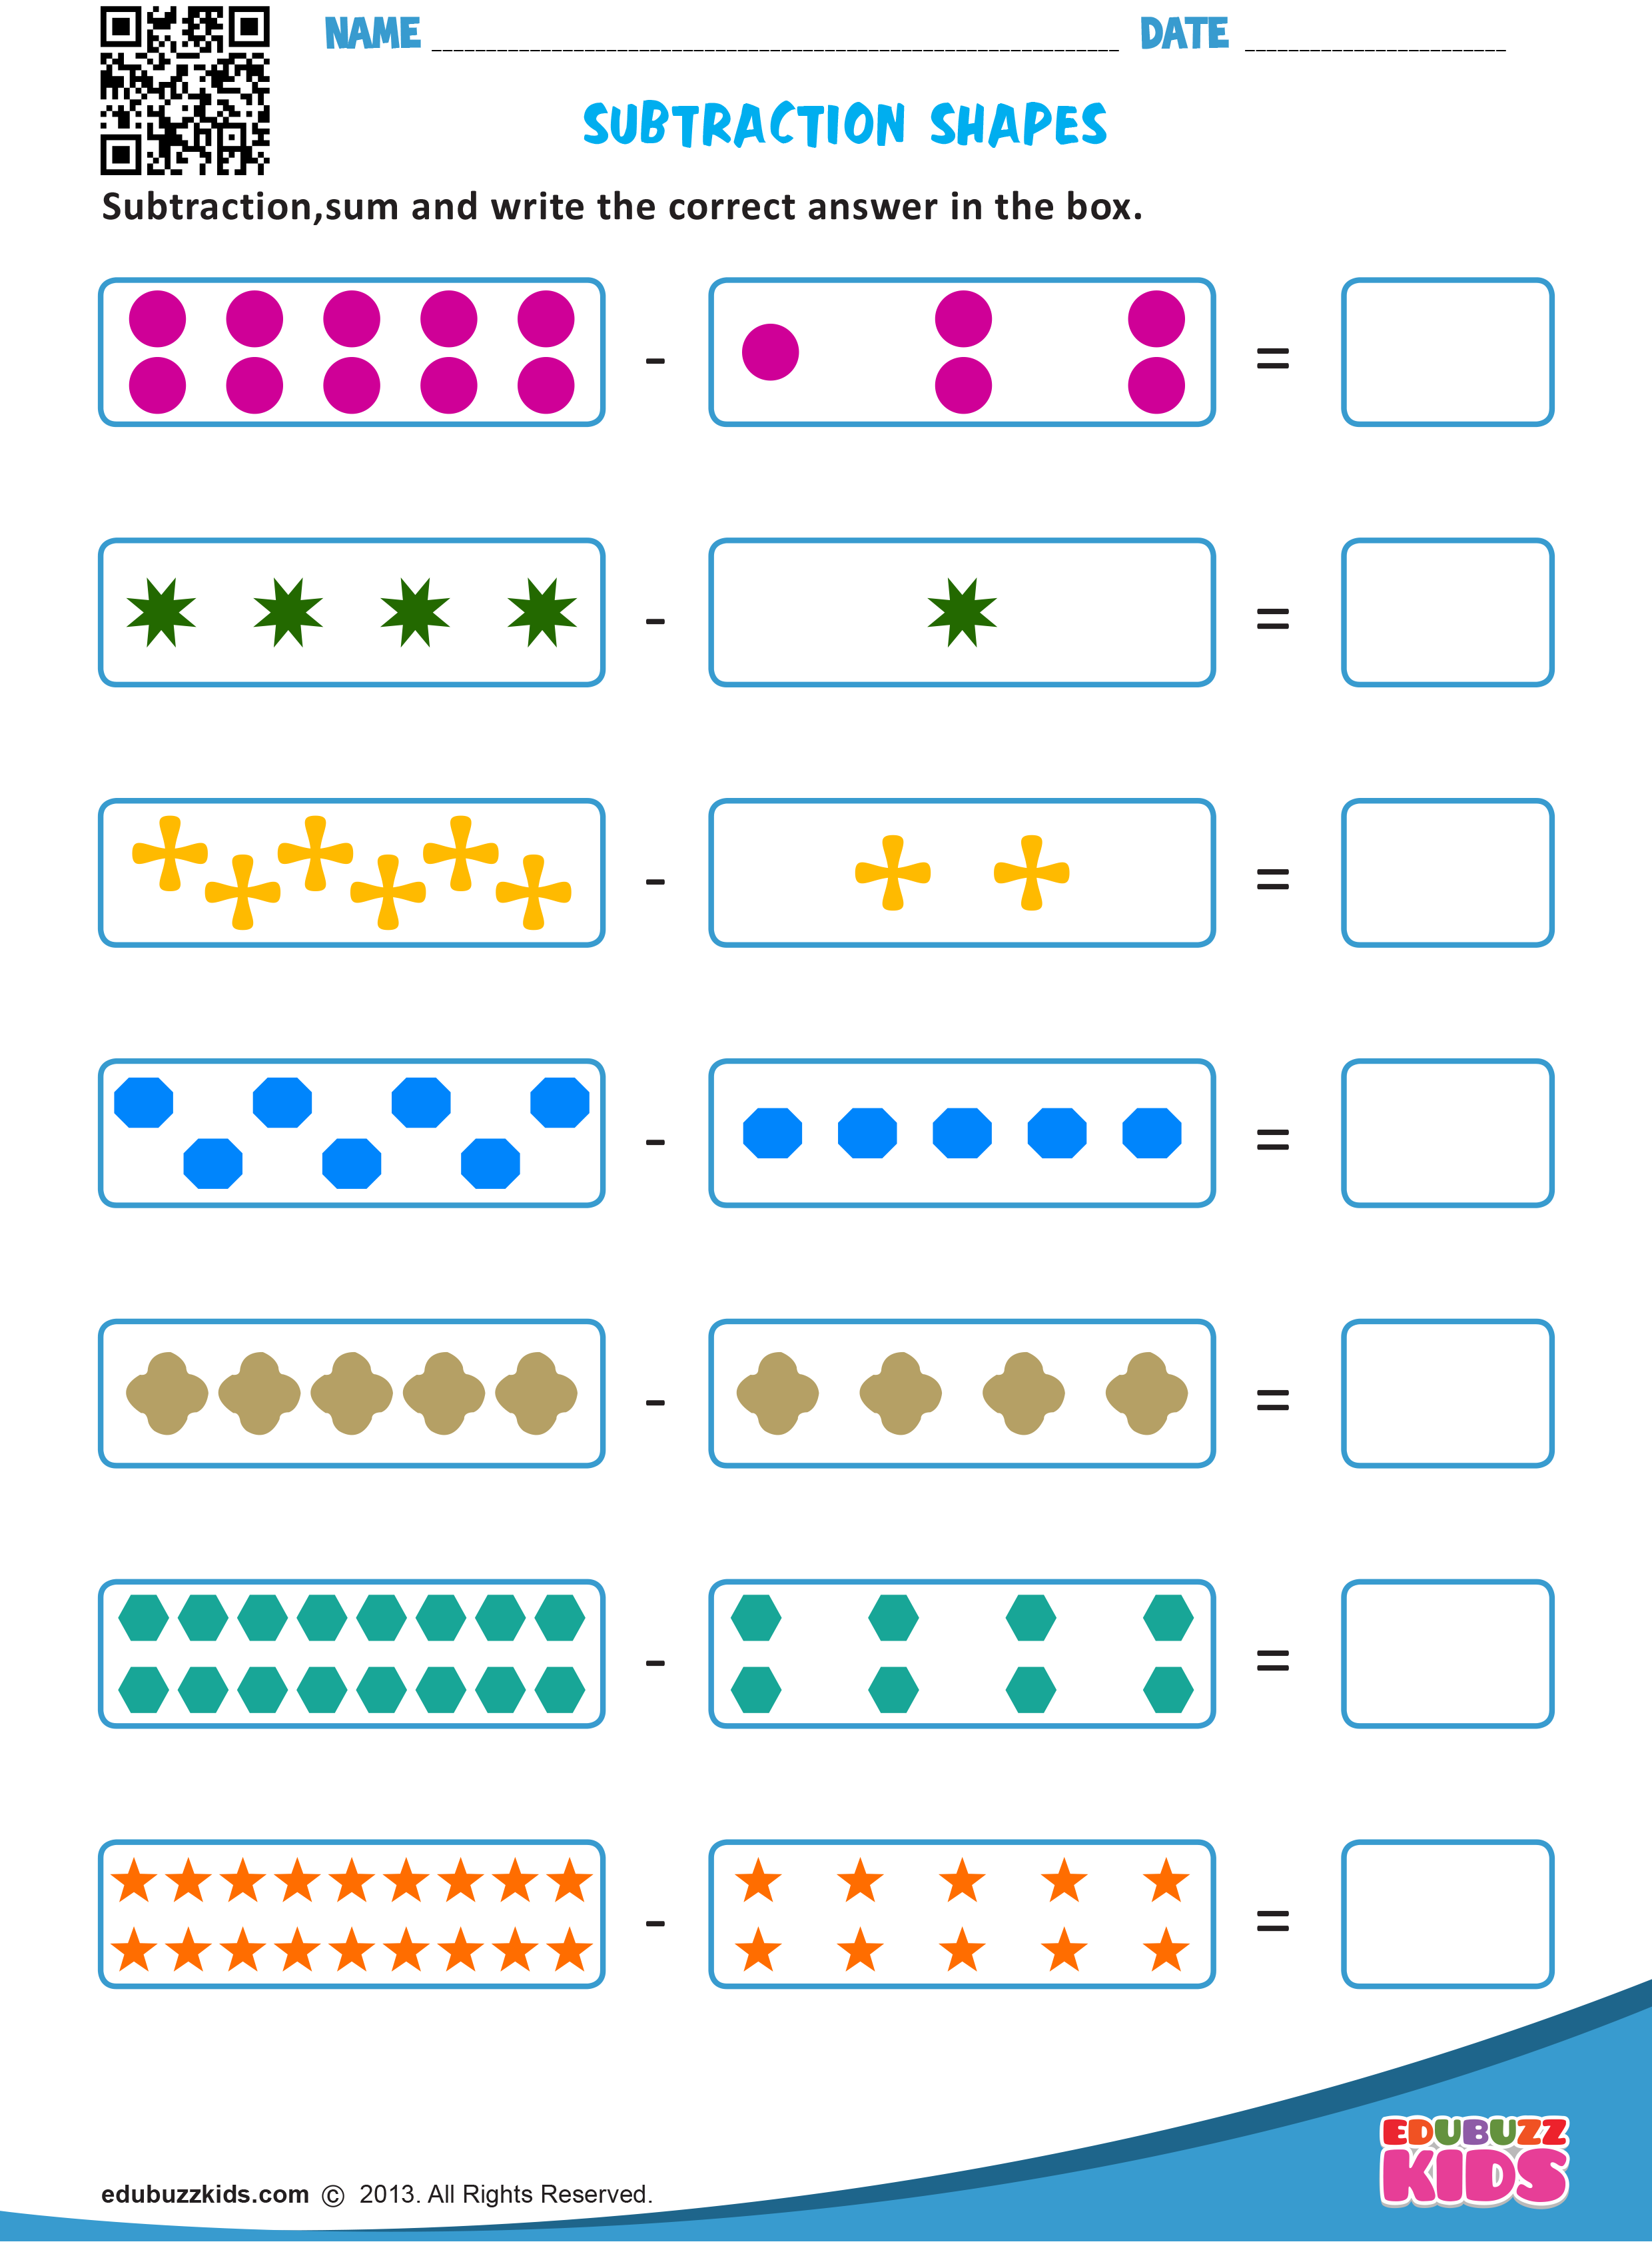 Kindergarten Subtraction With Shapes Worksheets That Allow